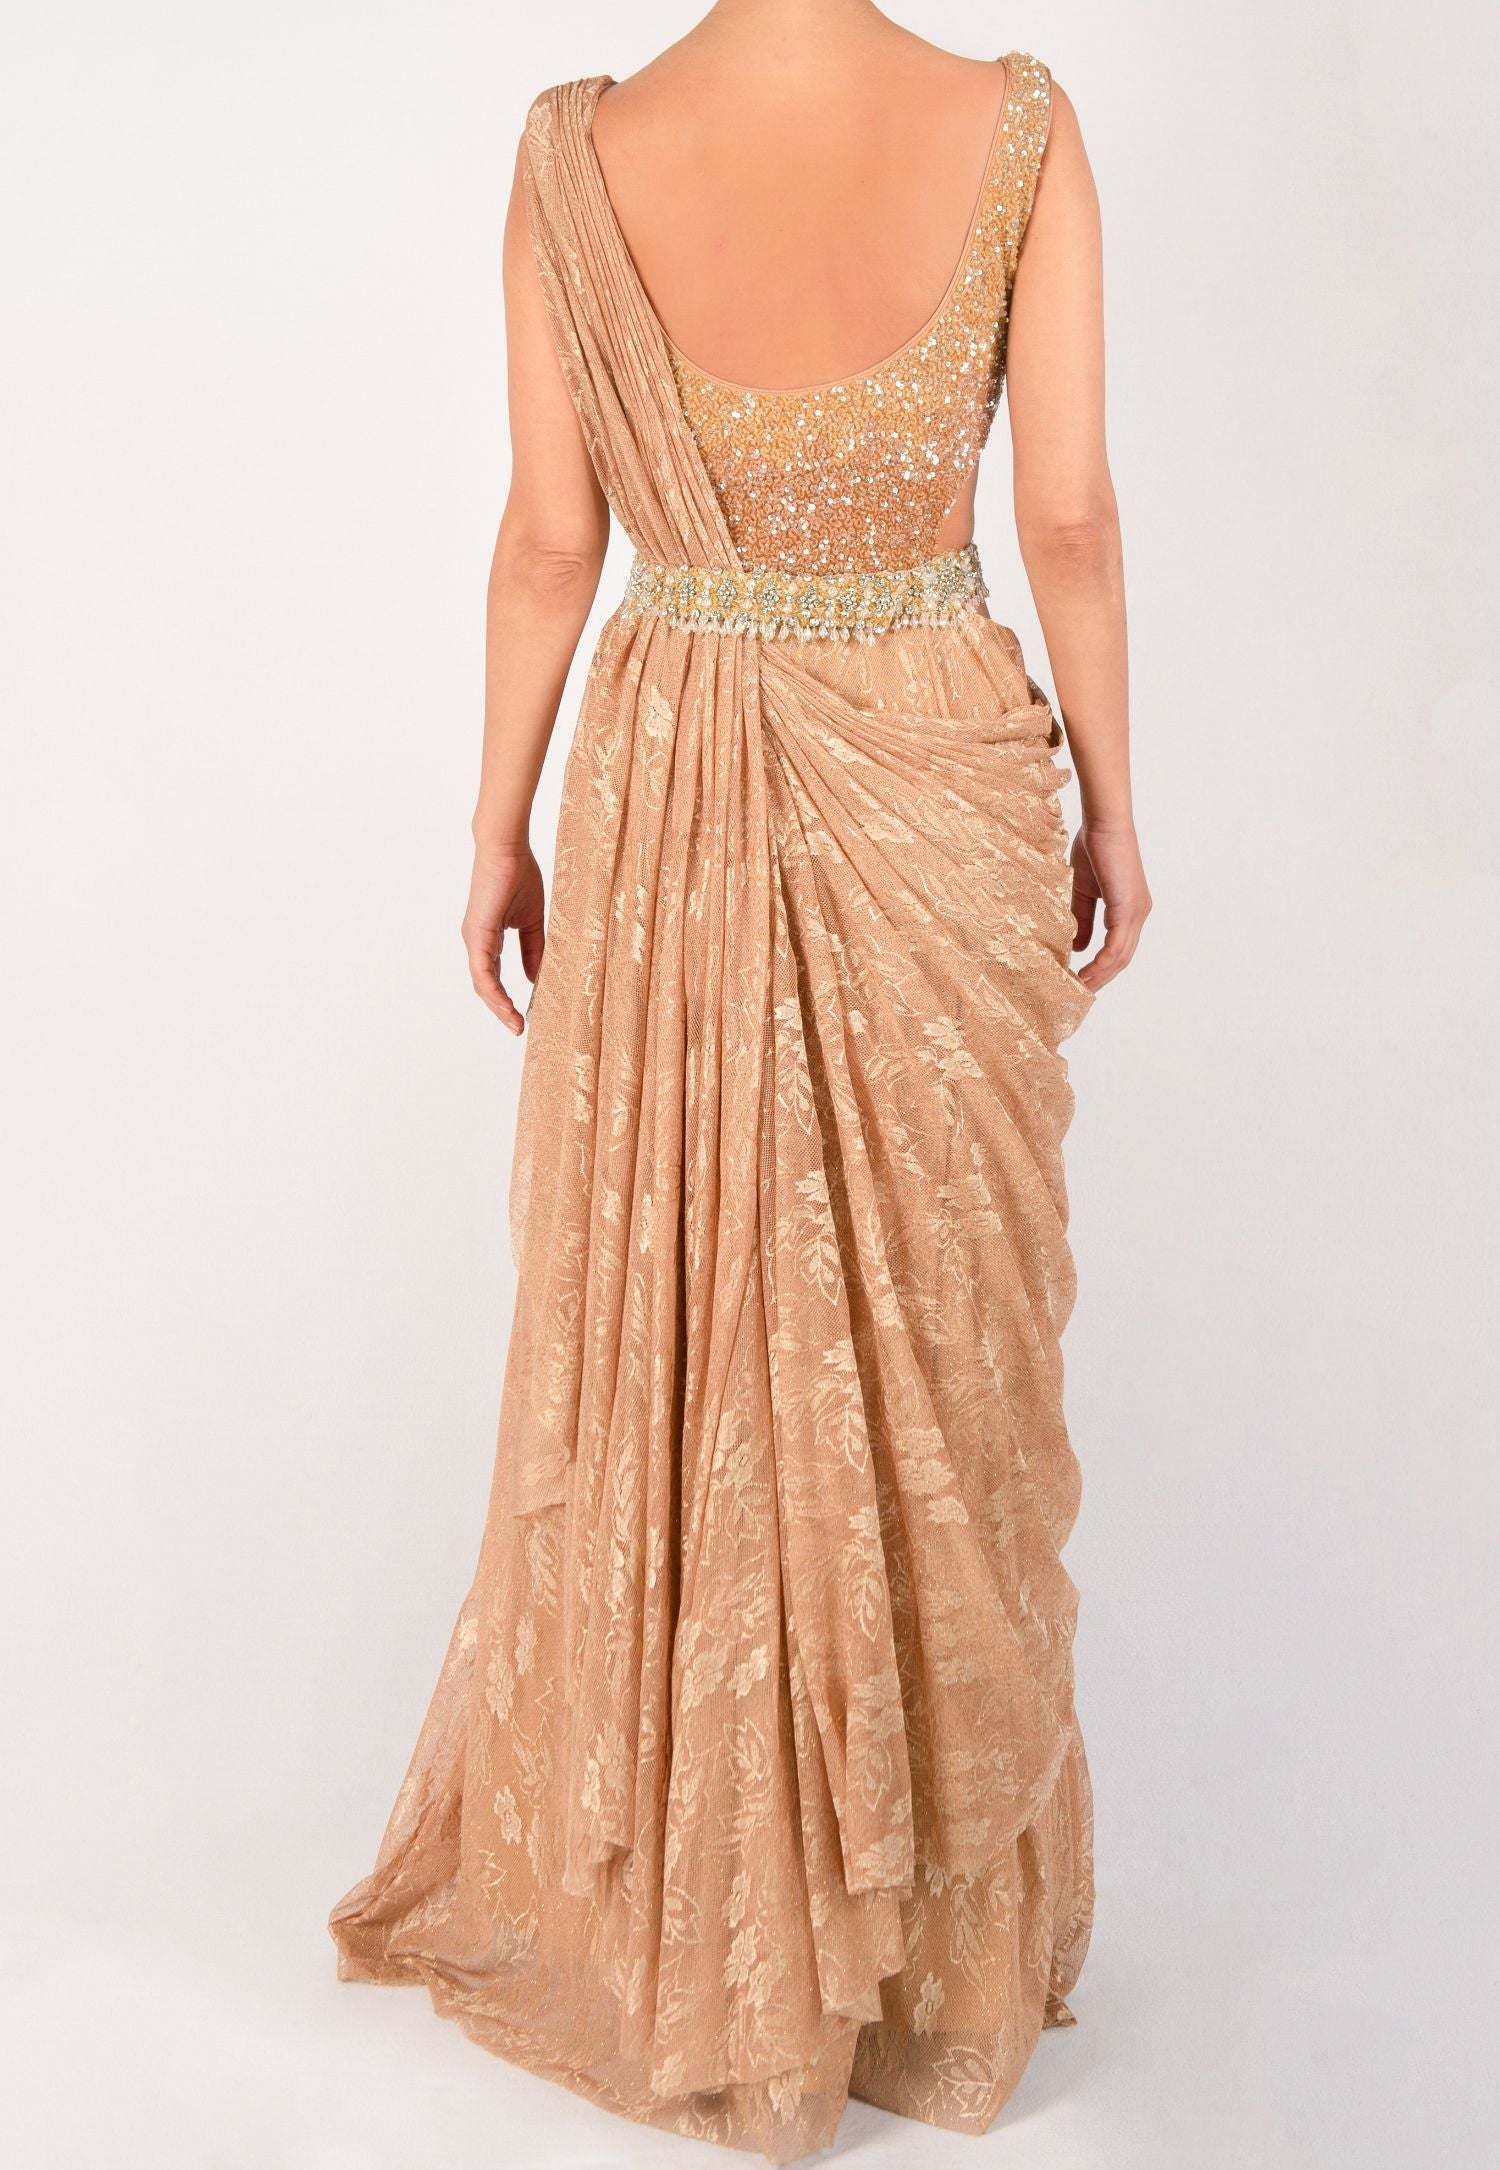 Sujata And Sanjay Lace And Sequin Saree Gown With An Ornate Belt Loverentreturn